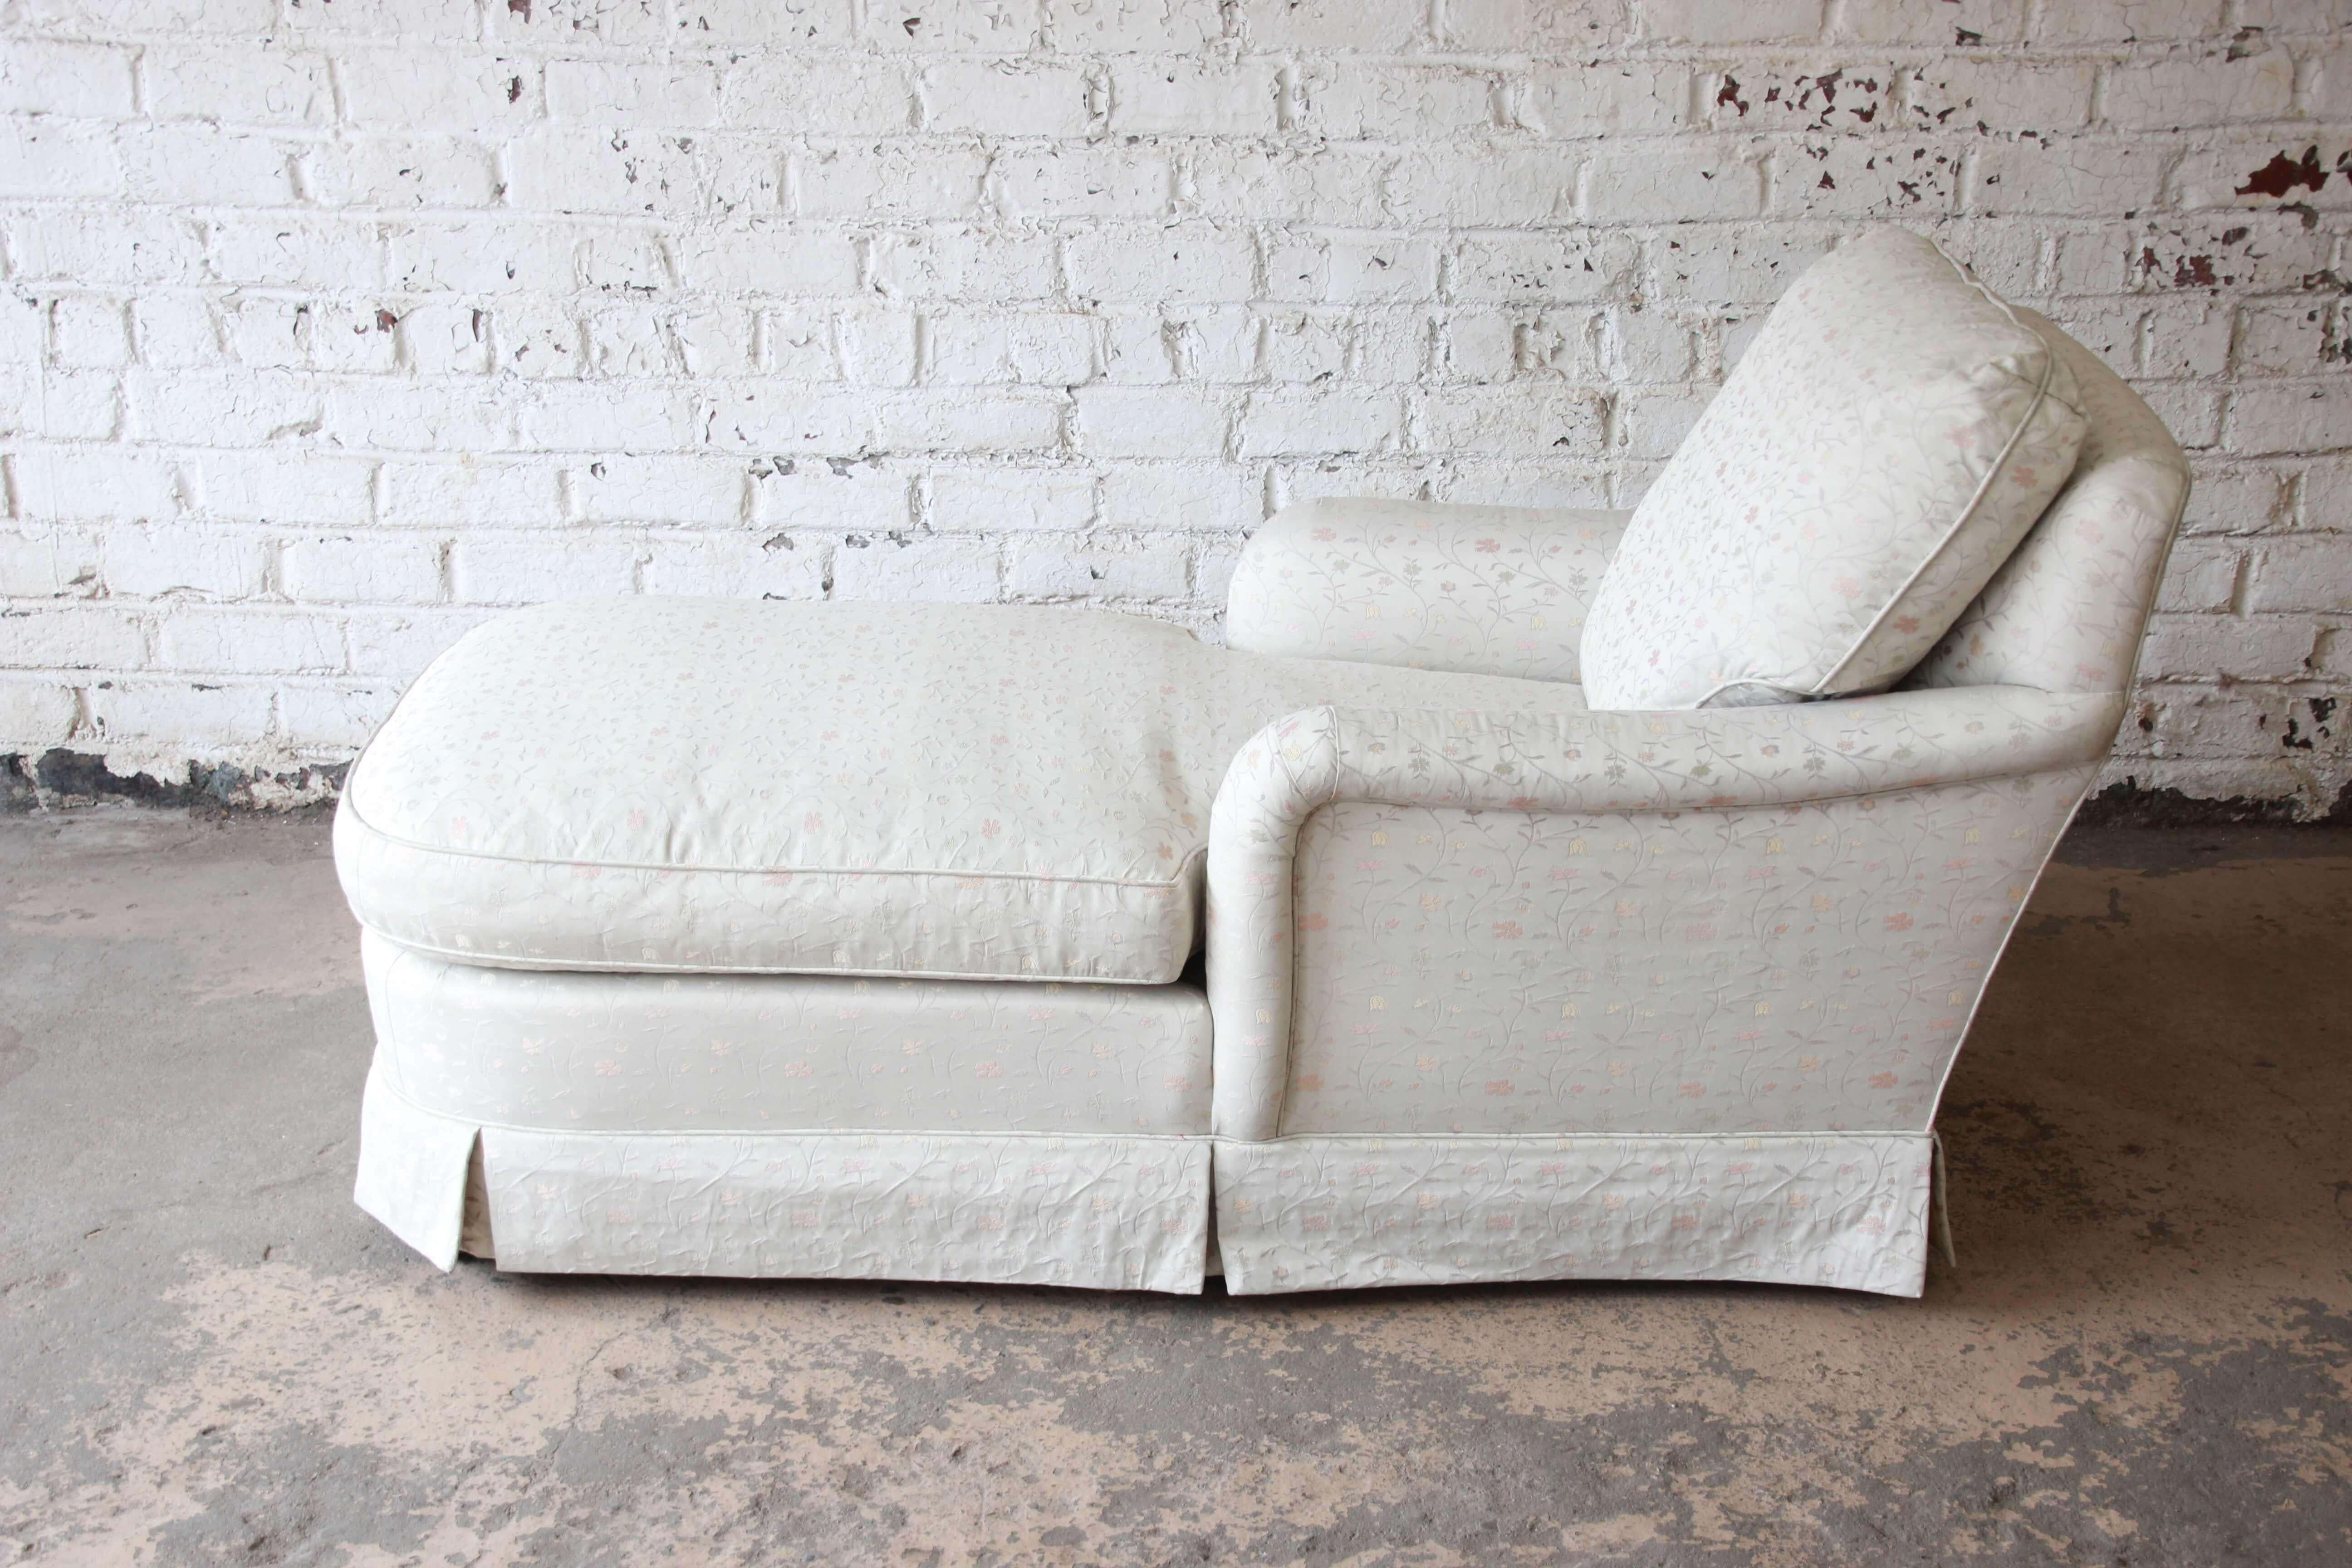 Offering A Very Beautiful Vintage Baker Furniture Chaise Longue Chair. The  Chair Has A Very